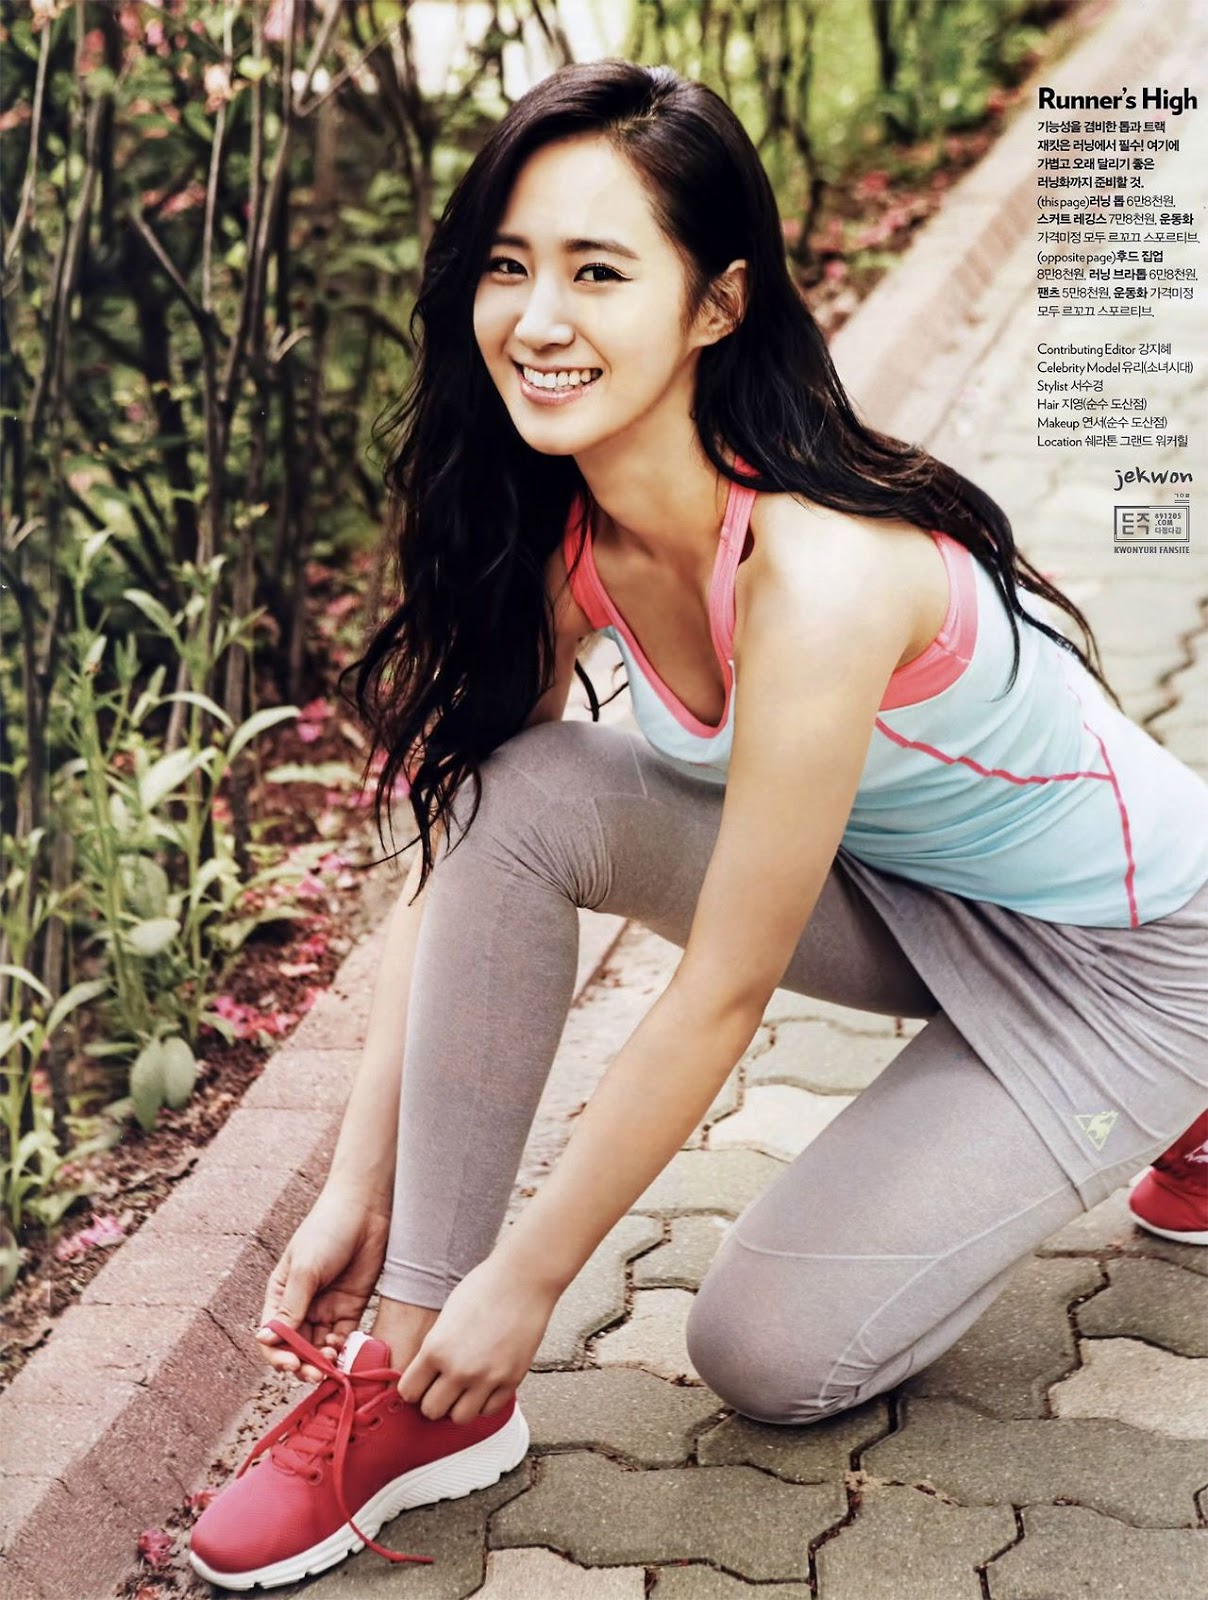 Soshi95: Yuri @ Cosmopolitan Magazine June Issue Pictures 210513ls magazine